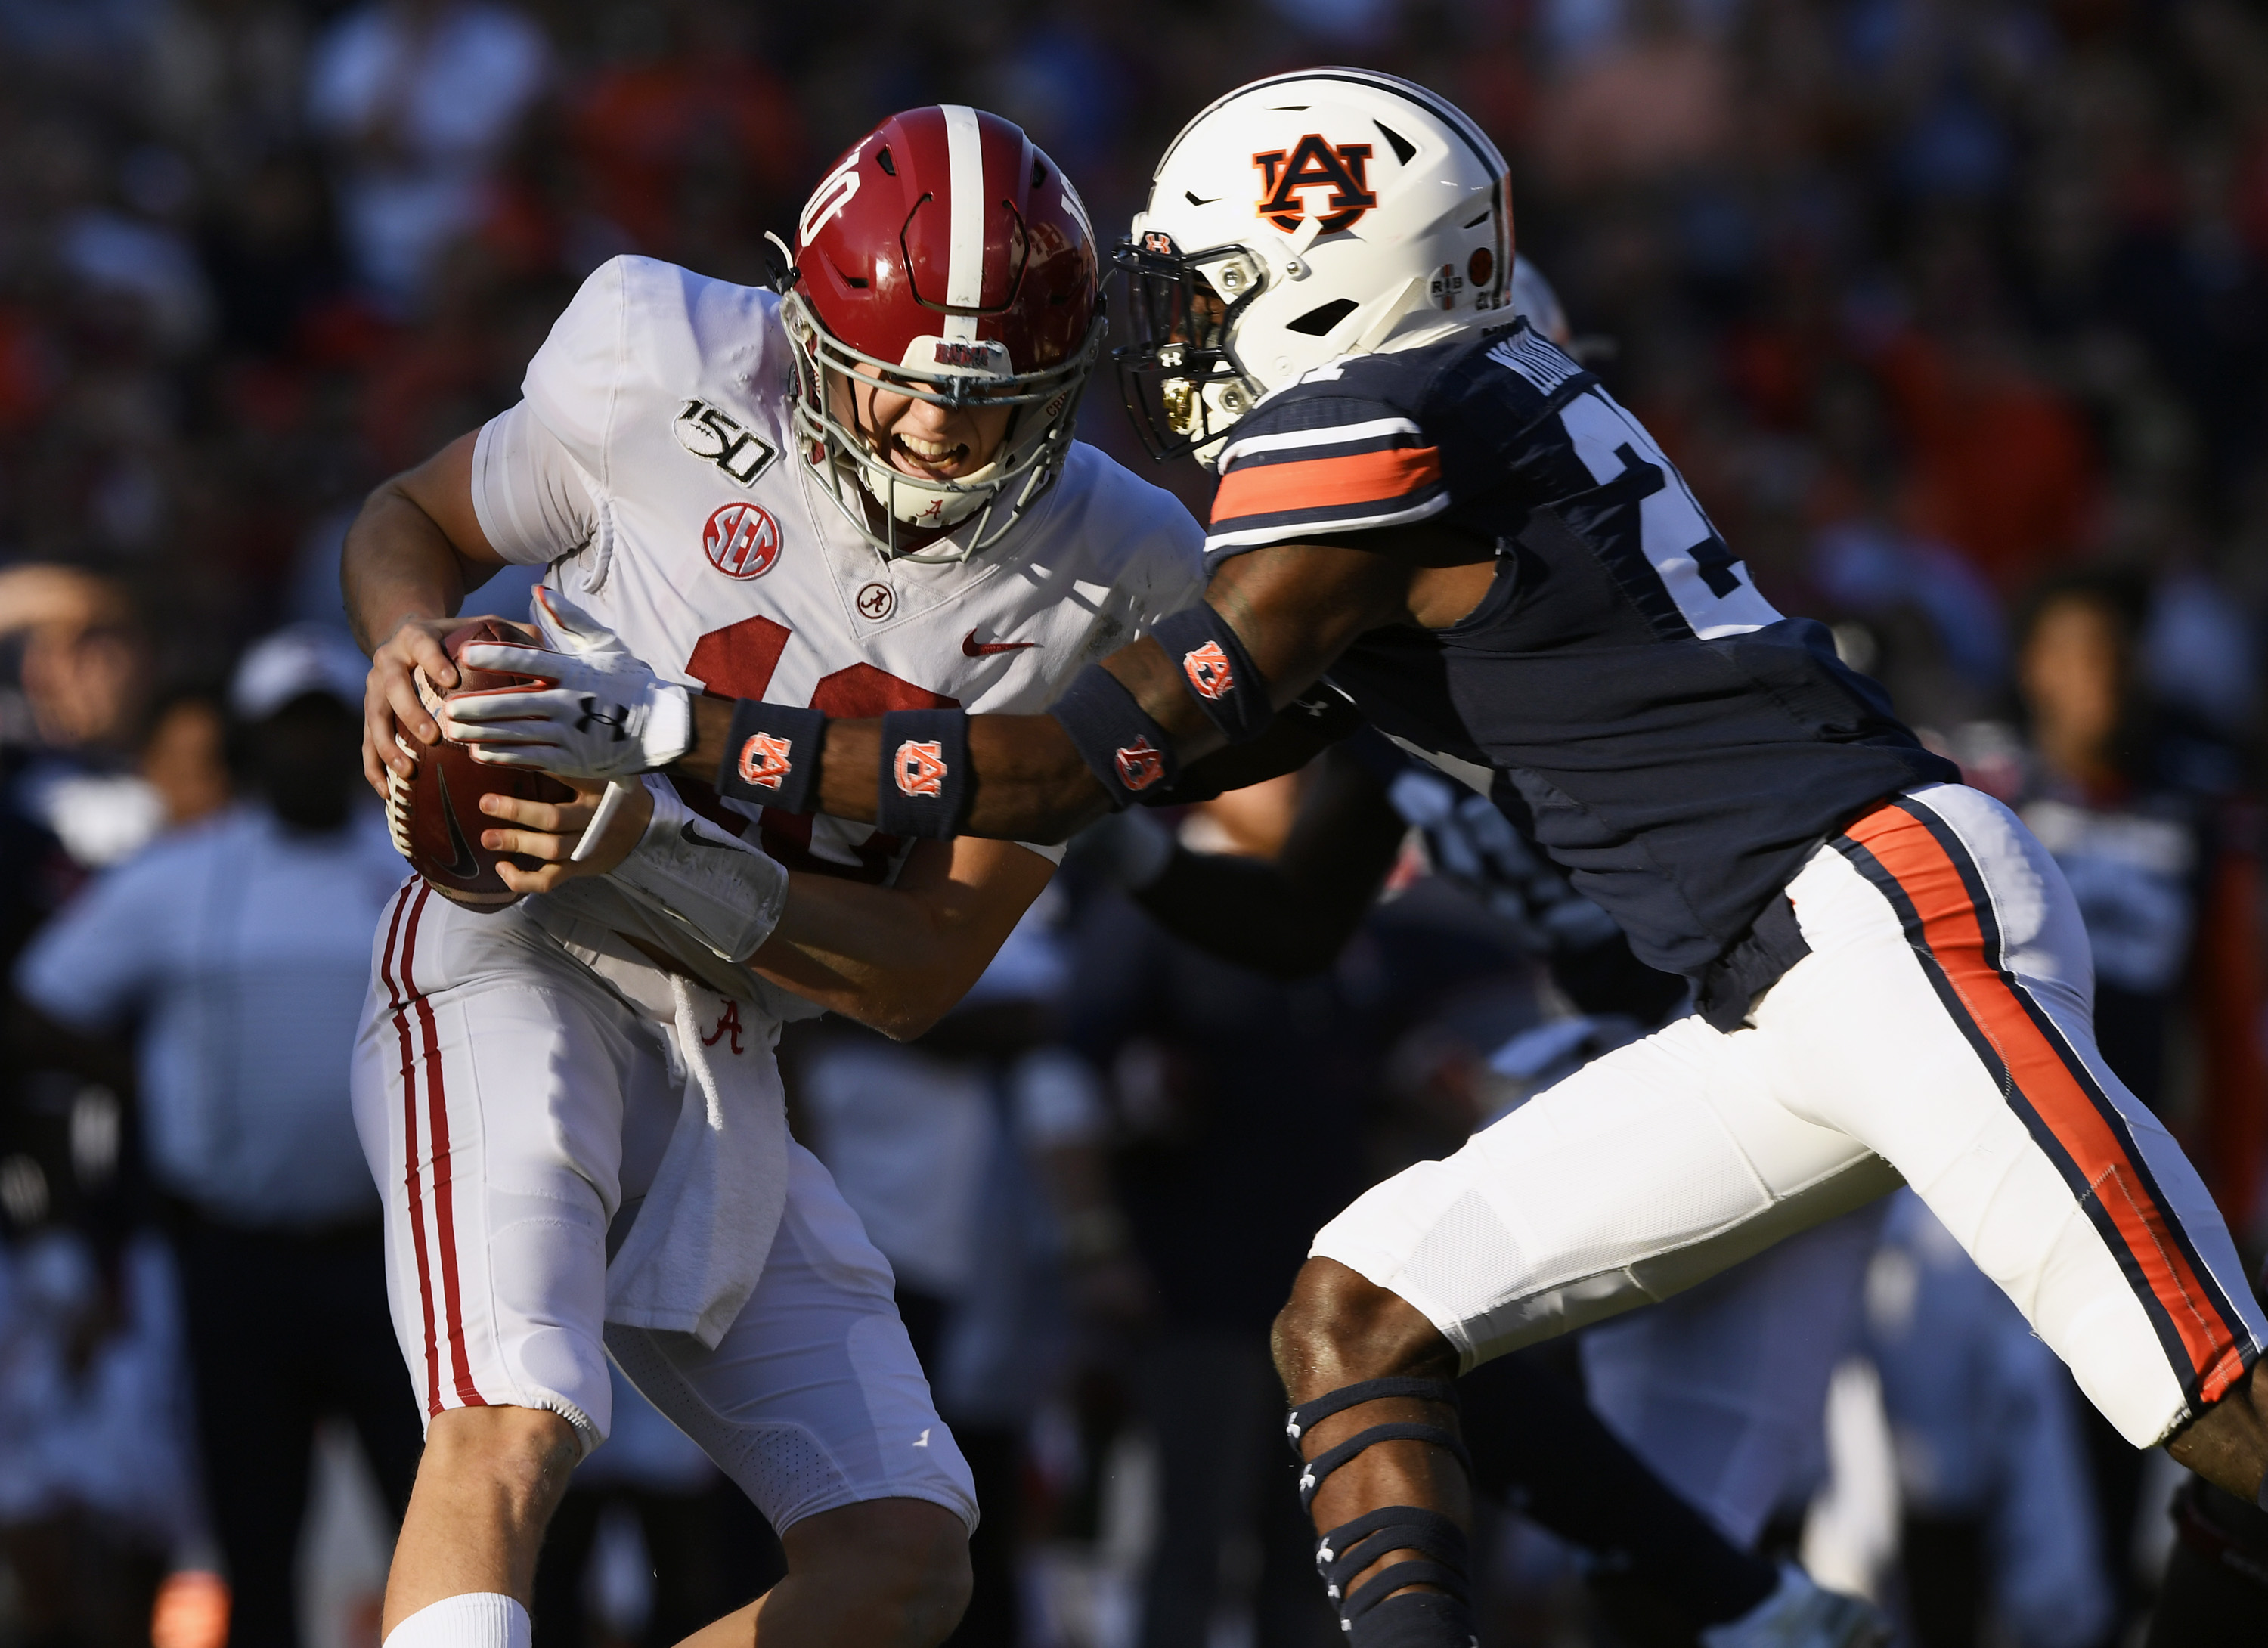 Game time, TV network announced for Iron Bowl